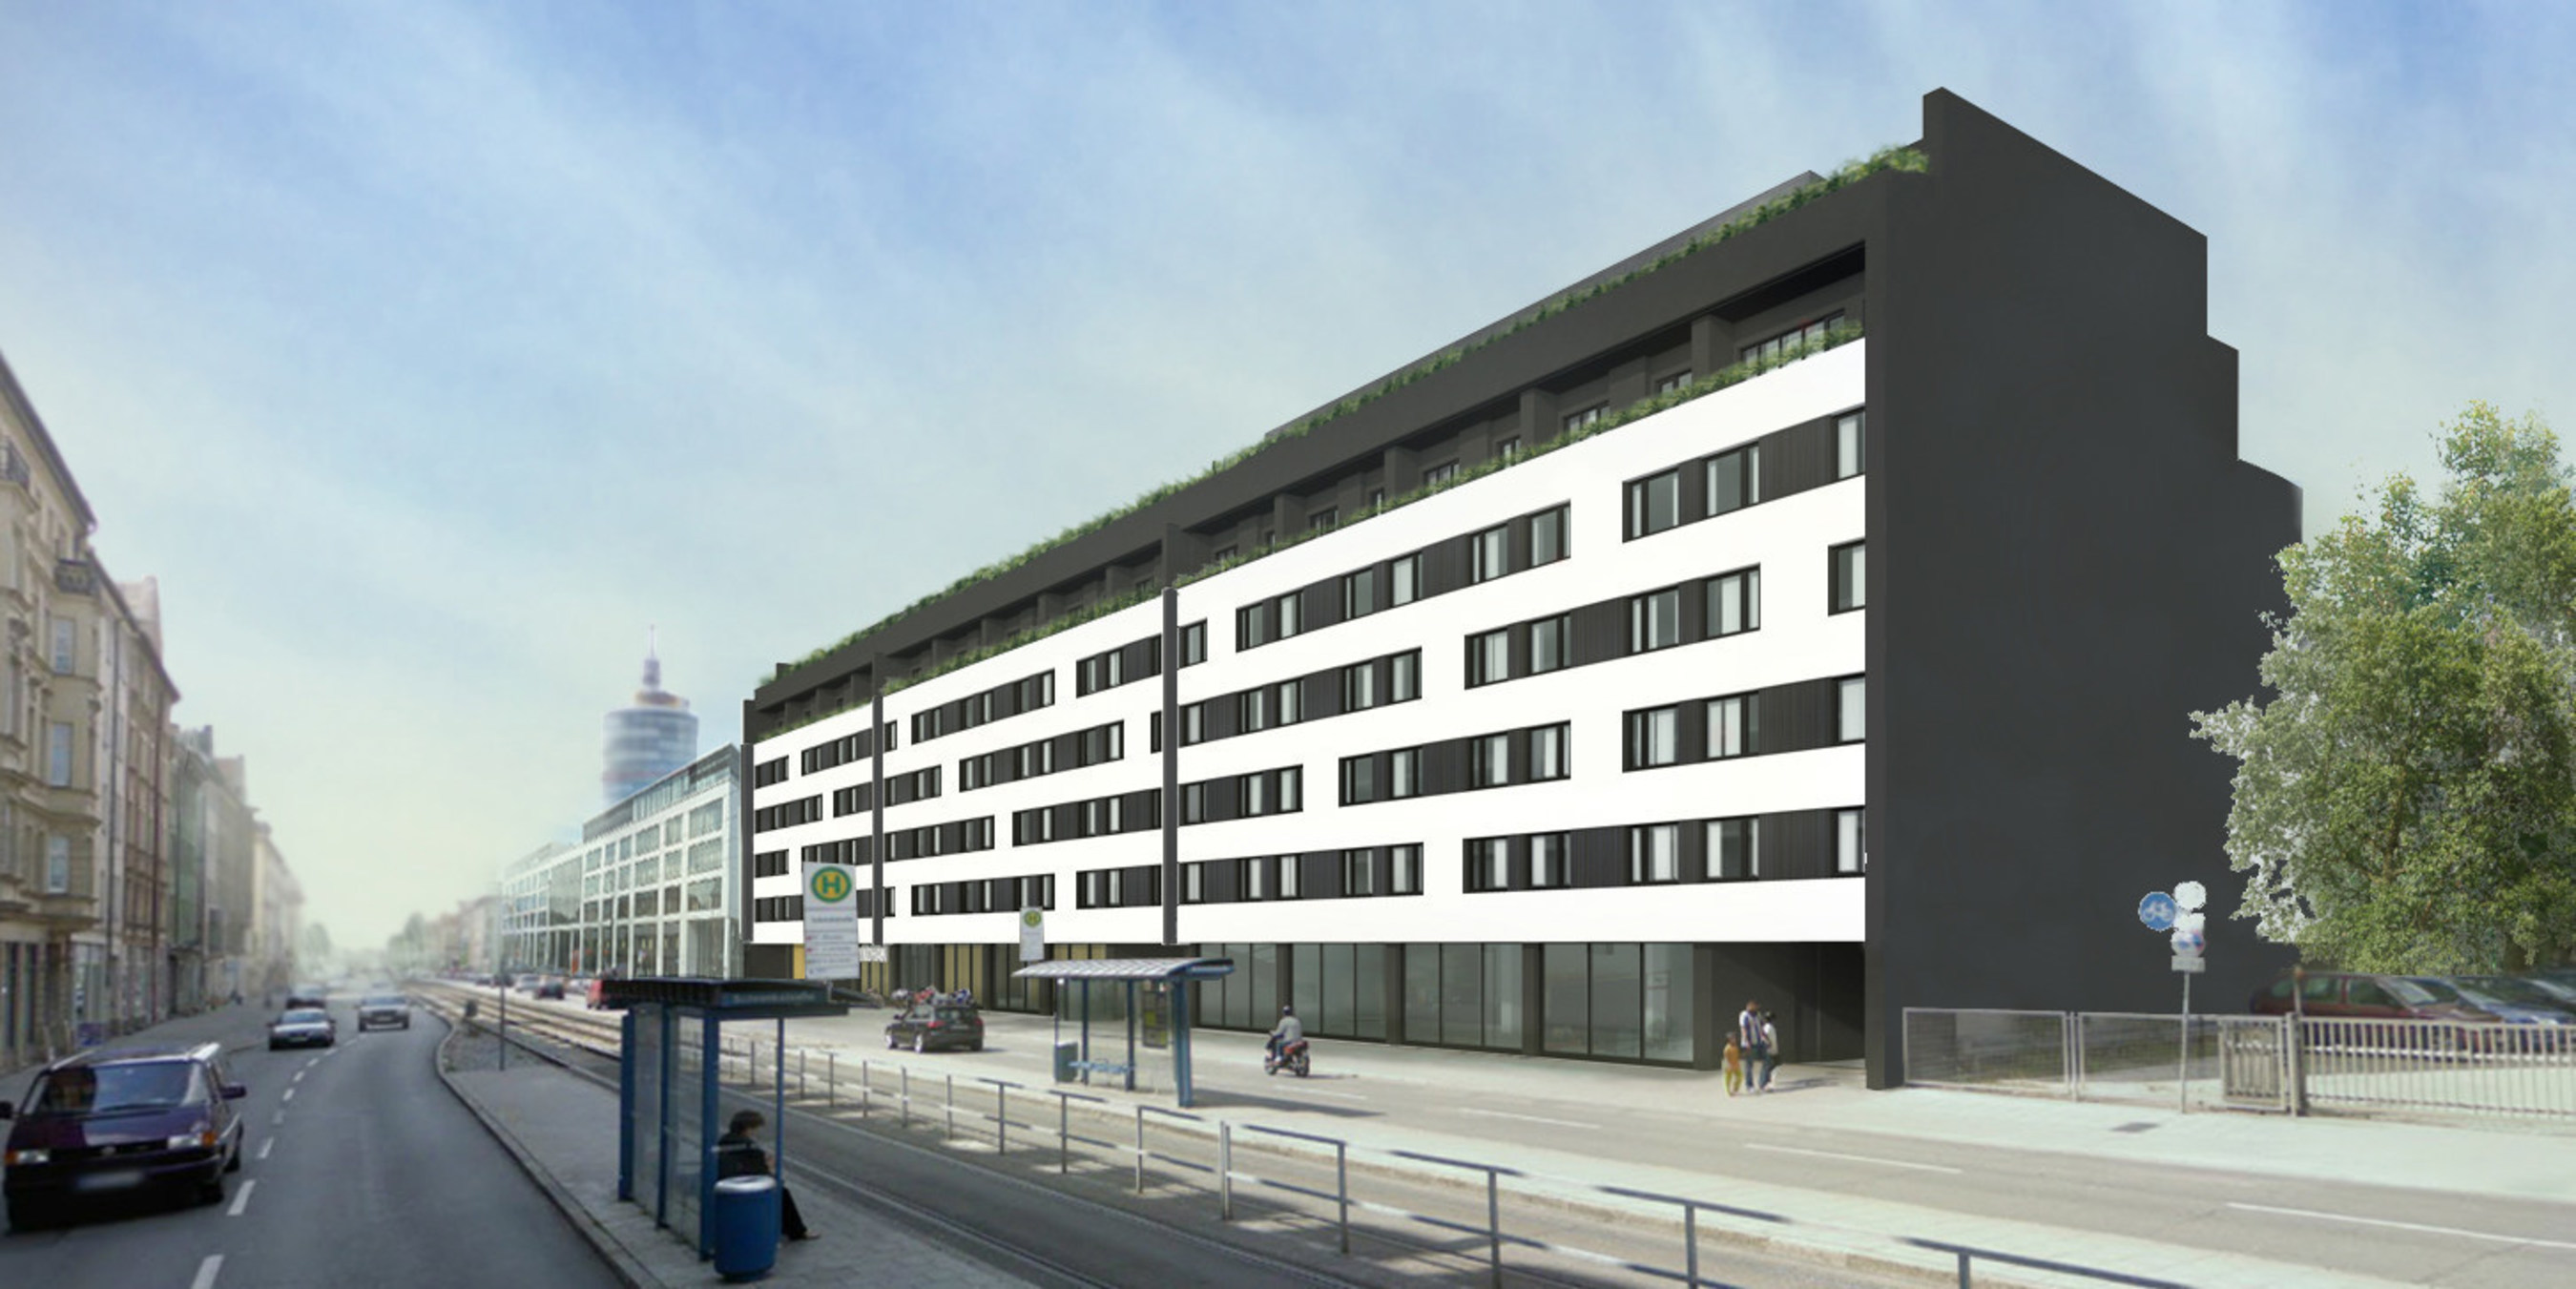 CPA:18 - Global enters into an agreement to fund the completion of a new upscale lifestyle hotel in Munich, ...